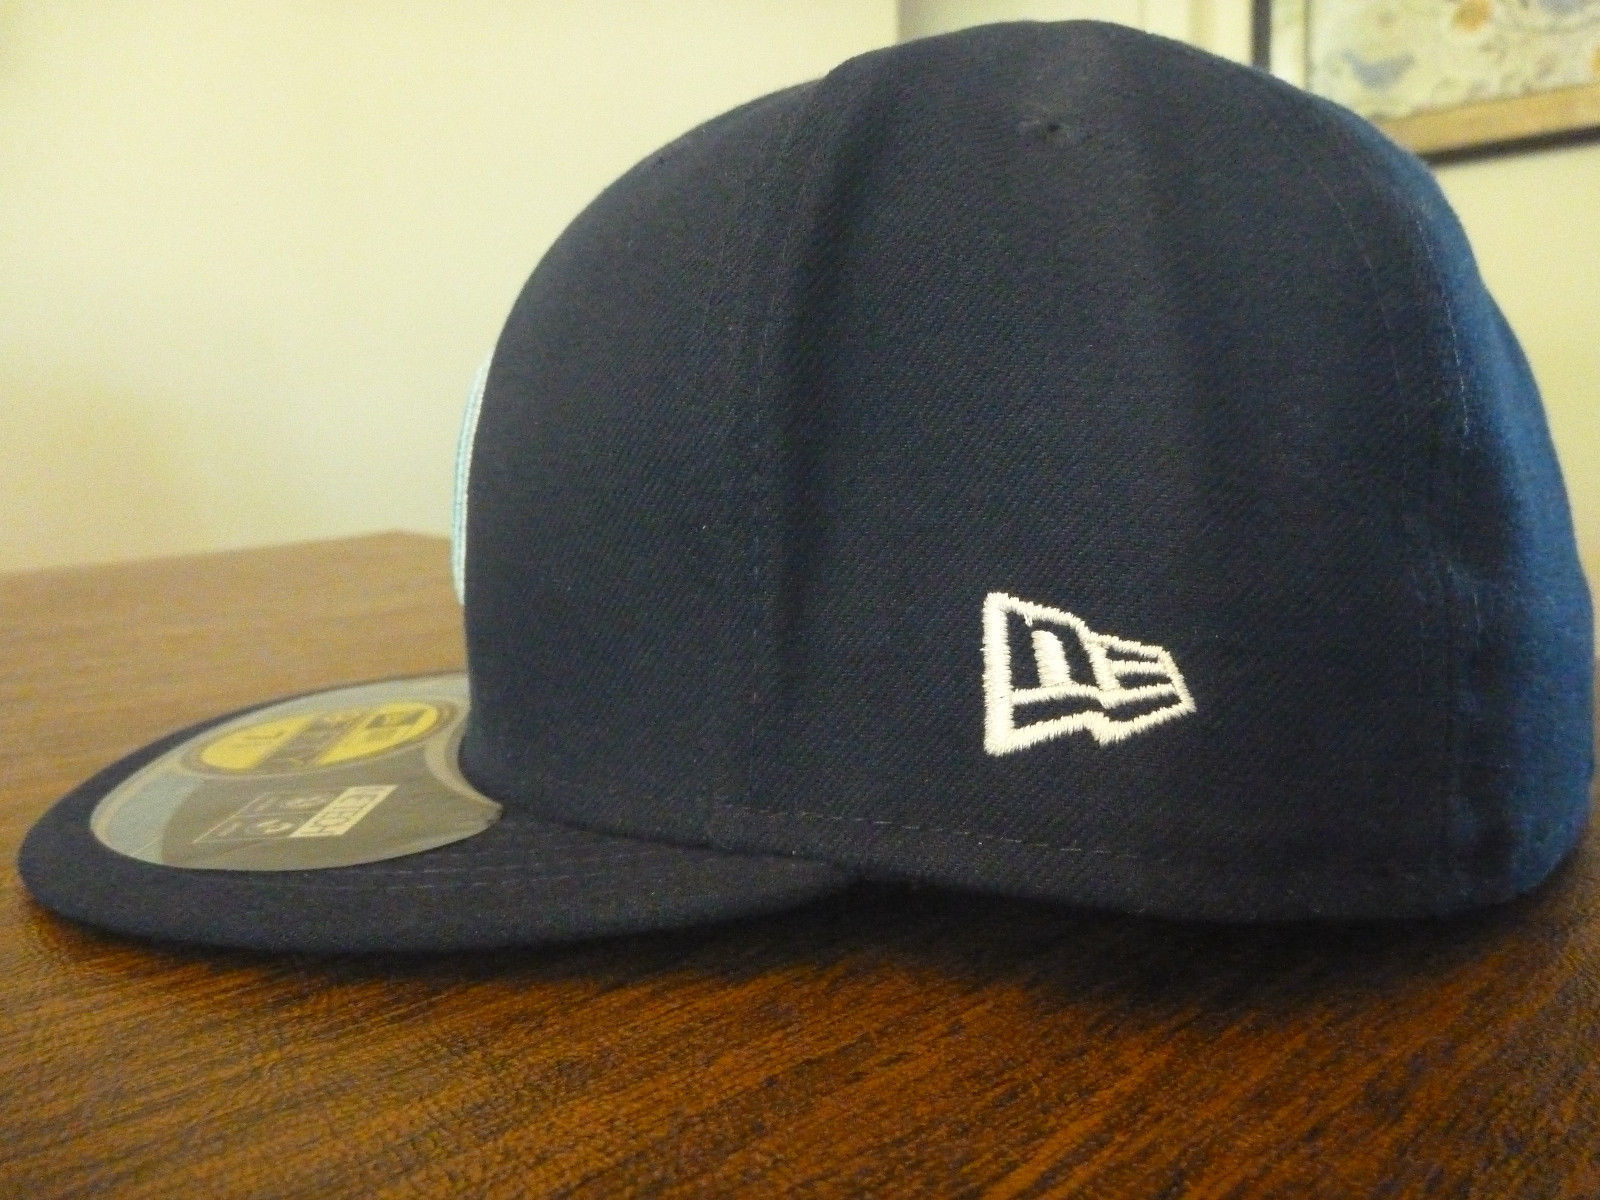 6760dd49cfb TENNESSEE TITANS NEW ERA 59FIFTY NFL ON FIELD SIDELINE BLUE FITTED HAT Sz 7  3